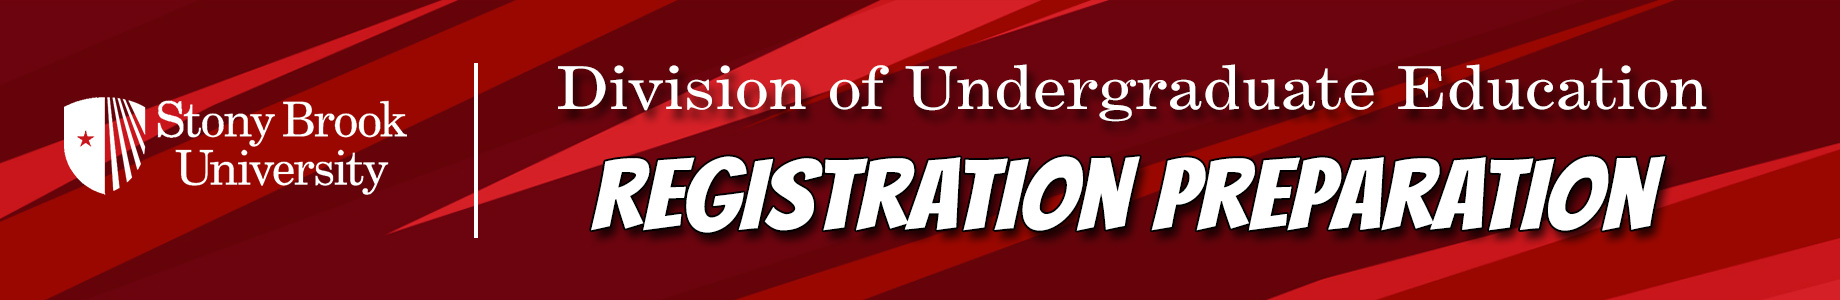 The Registration Preparation Page